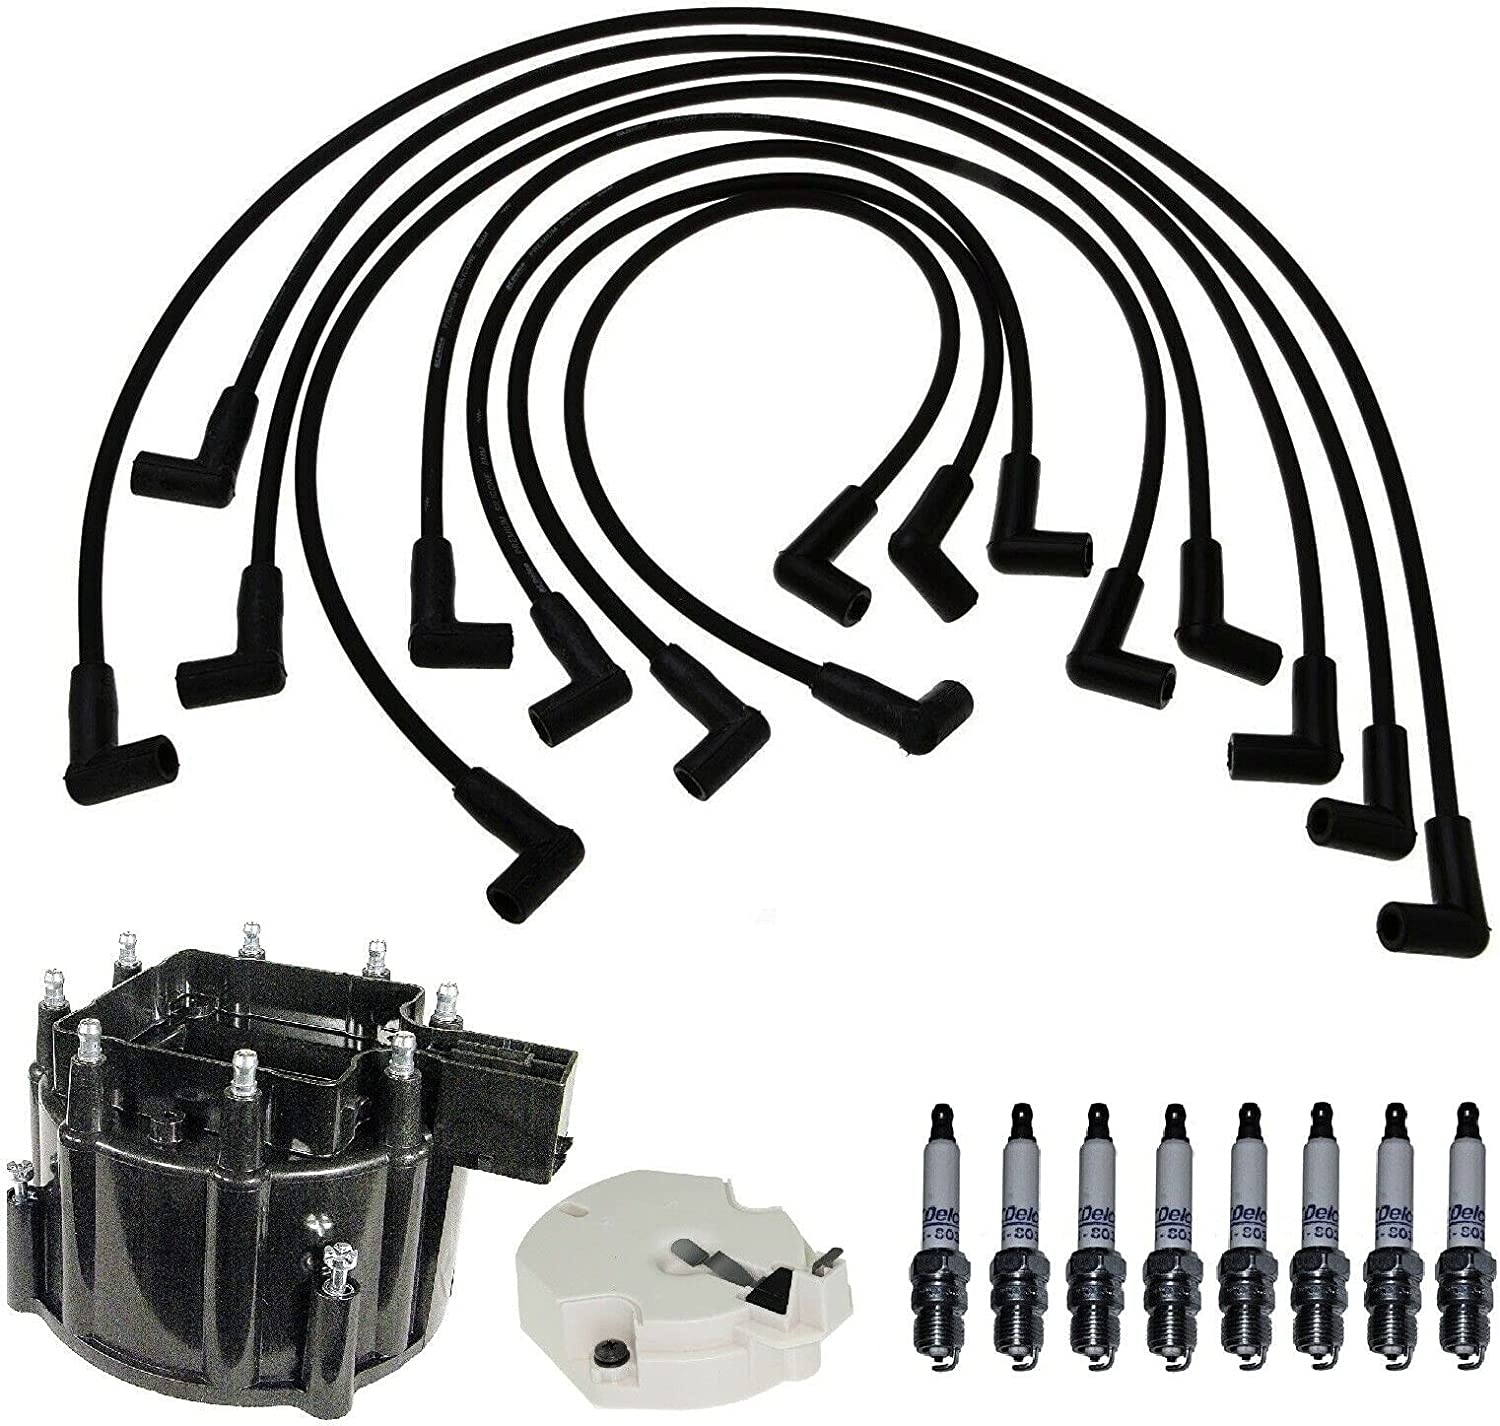 New mail order Replacement Distributor Cap Rotor Wire Gifts Kit Spark Plug